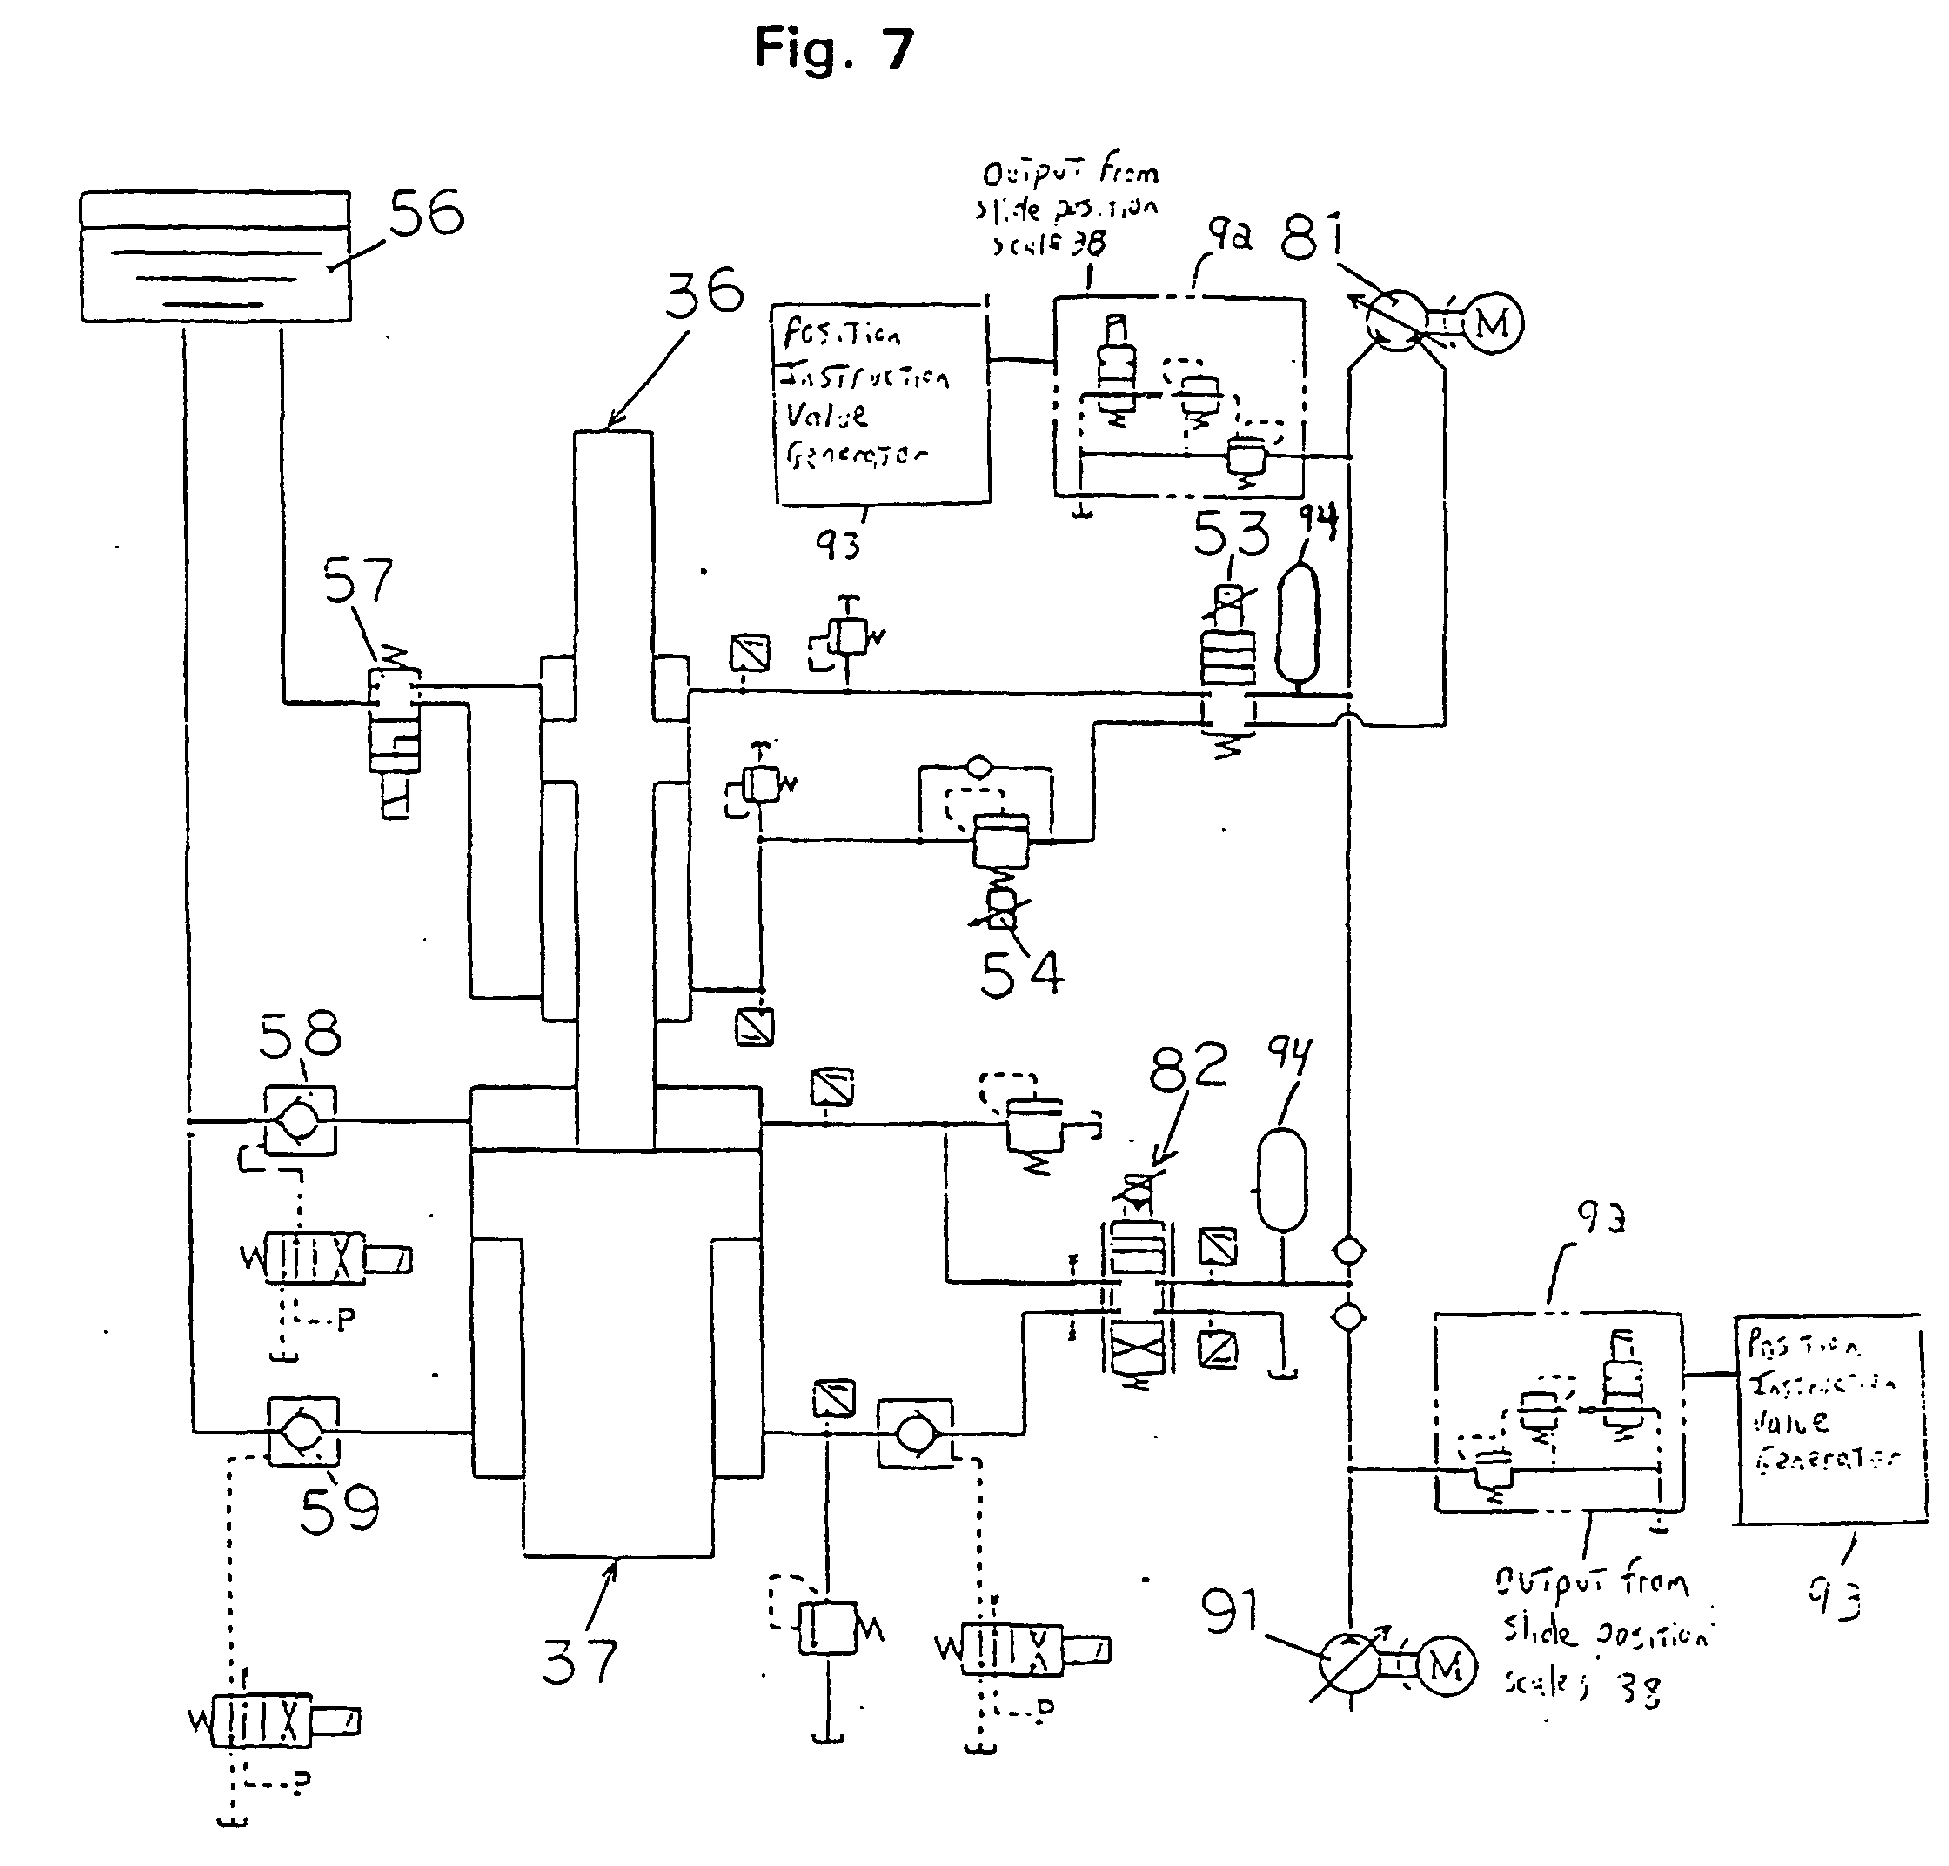 patent ep0867271b1 - hydraulic press for forming metal plates